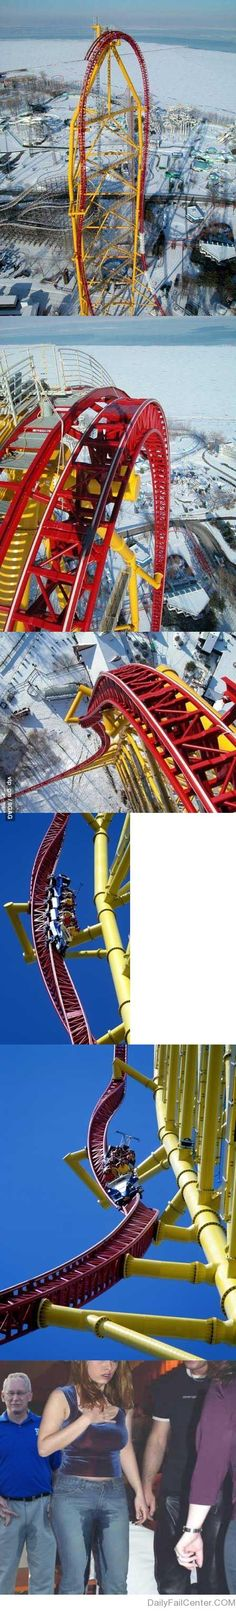 Not sure I'd pee myself but that's only cuz I don't think I could get on it. I'm an adrenaline junkie but OH-MY-GOD!